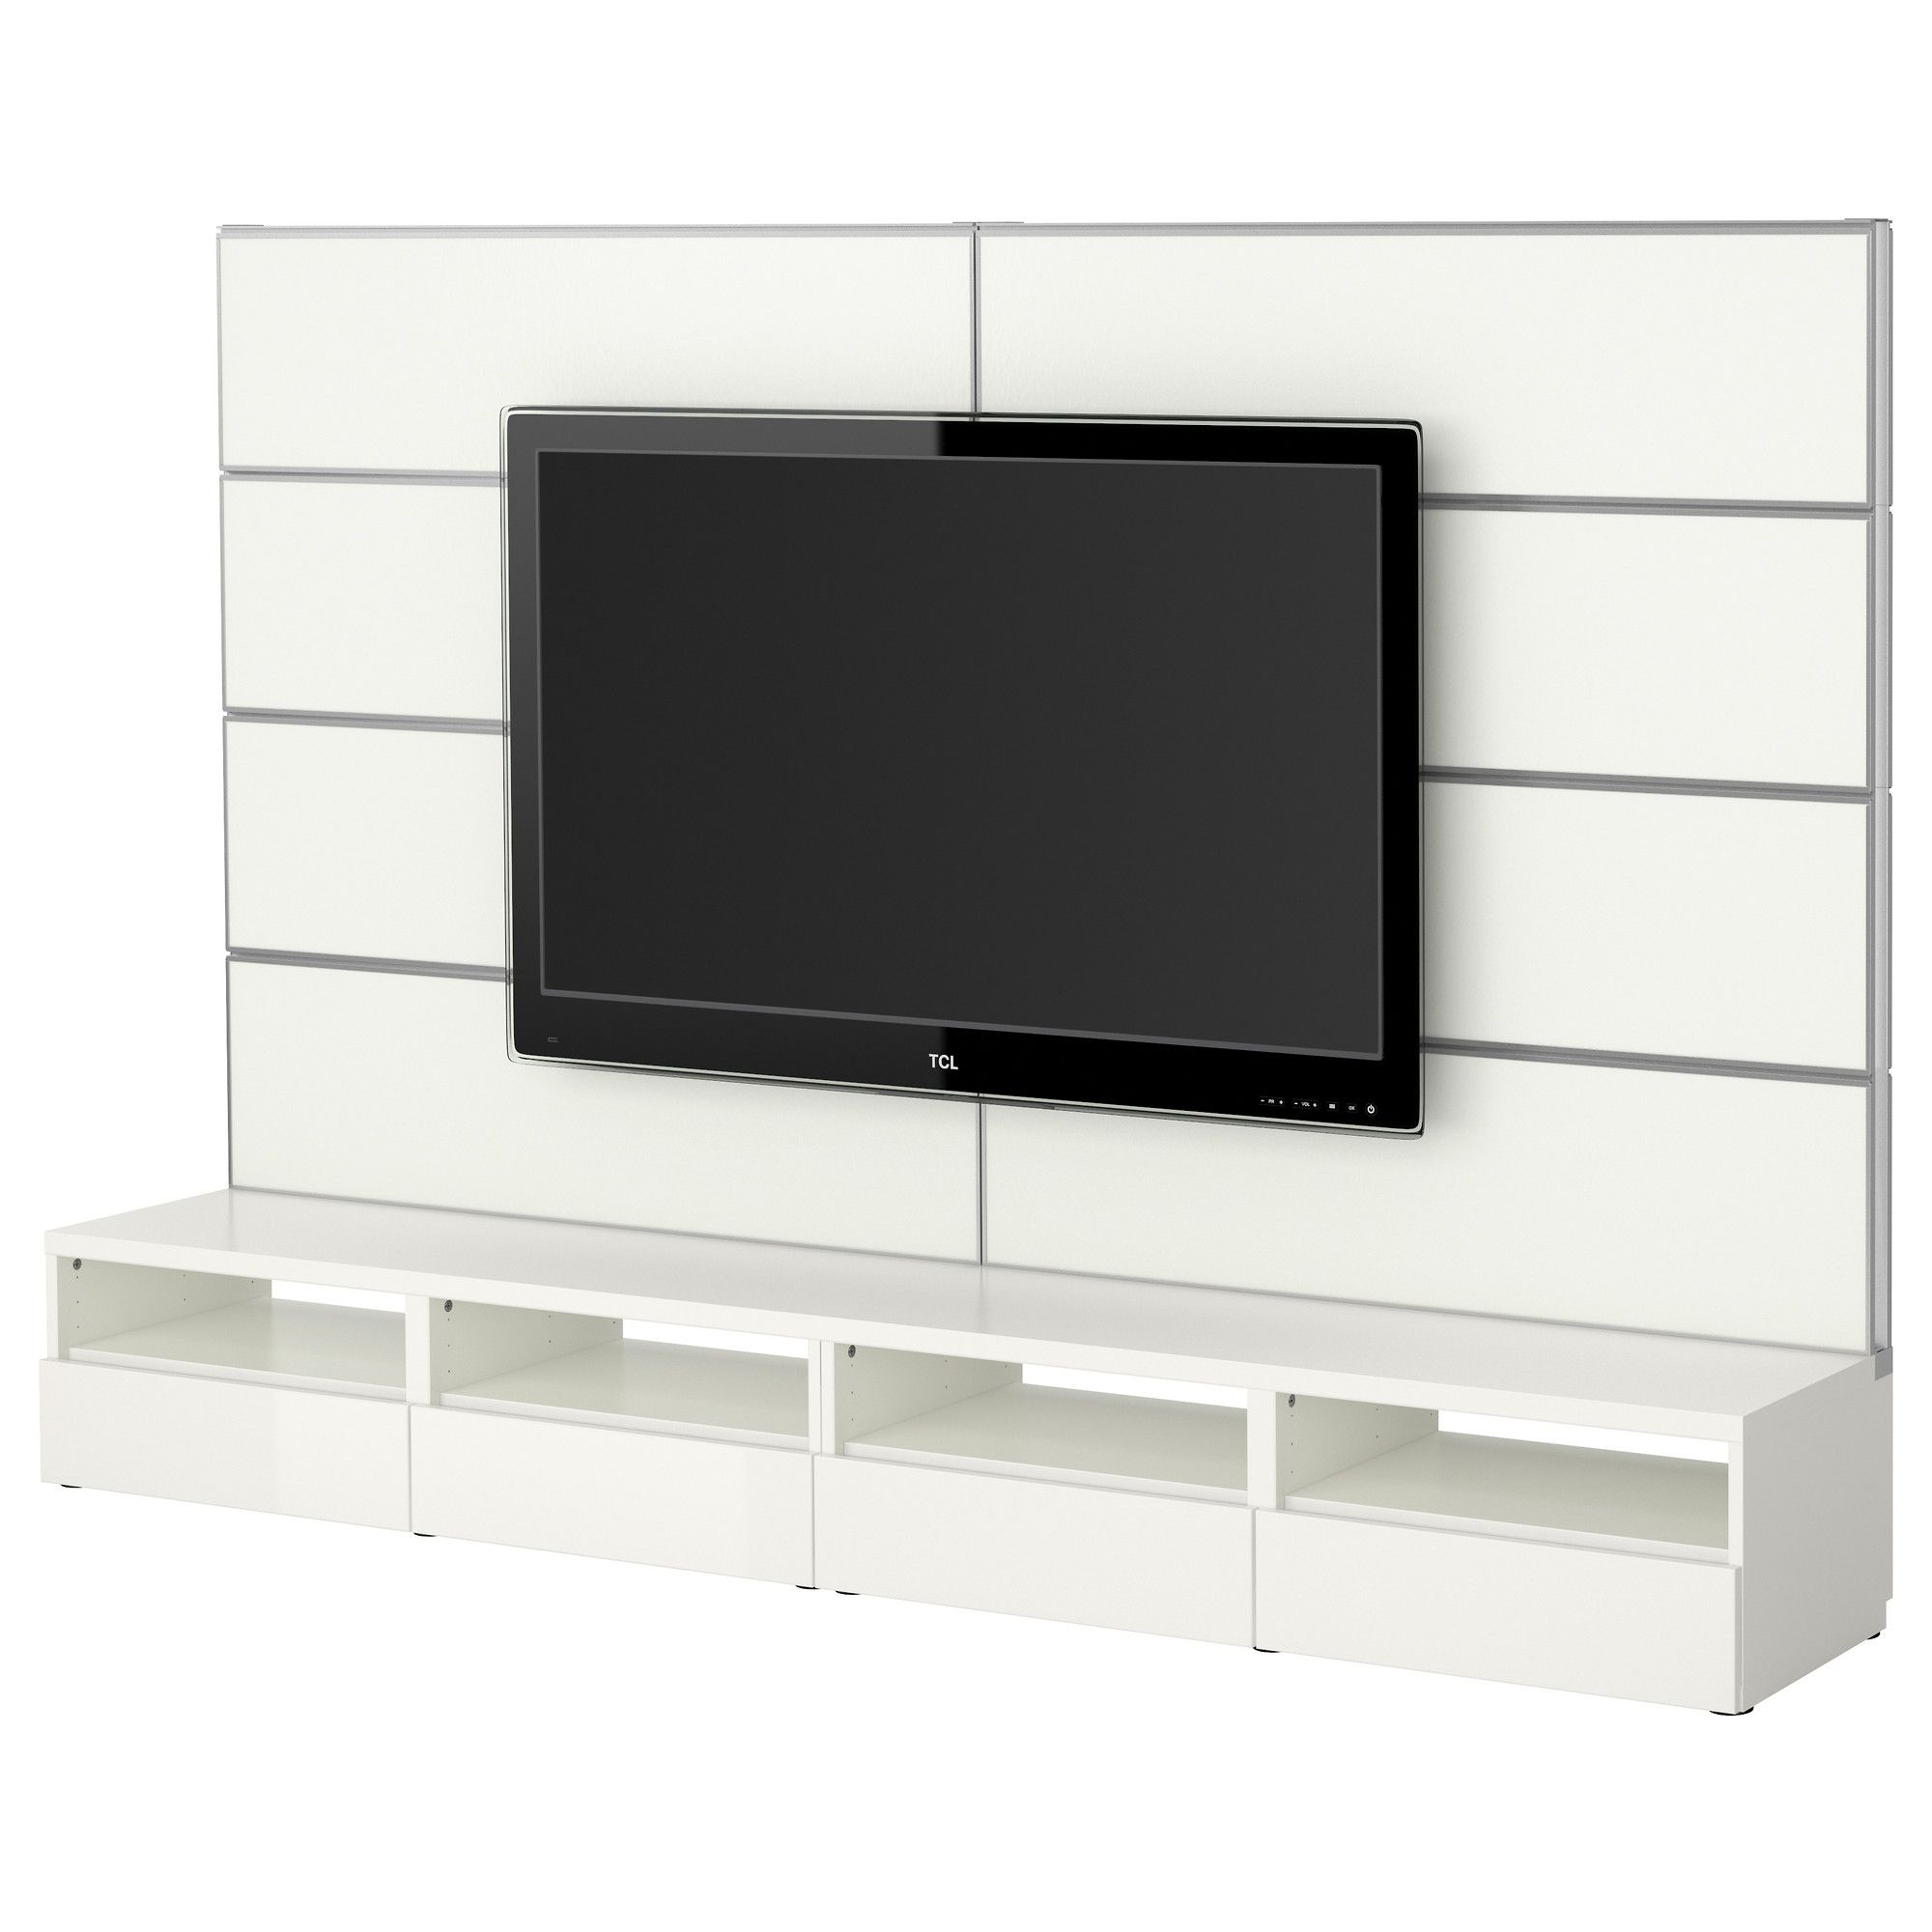 Best framst tv storage combination white ikea apt for Meuble mural ikea